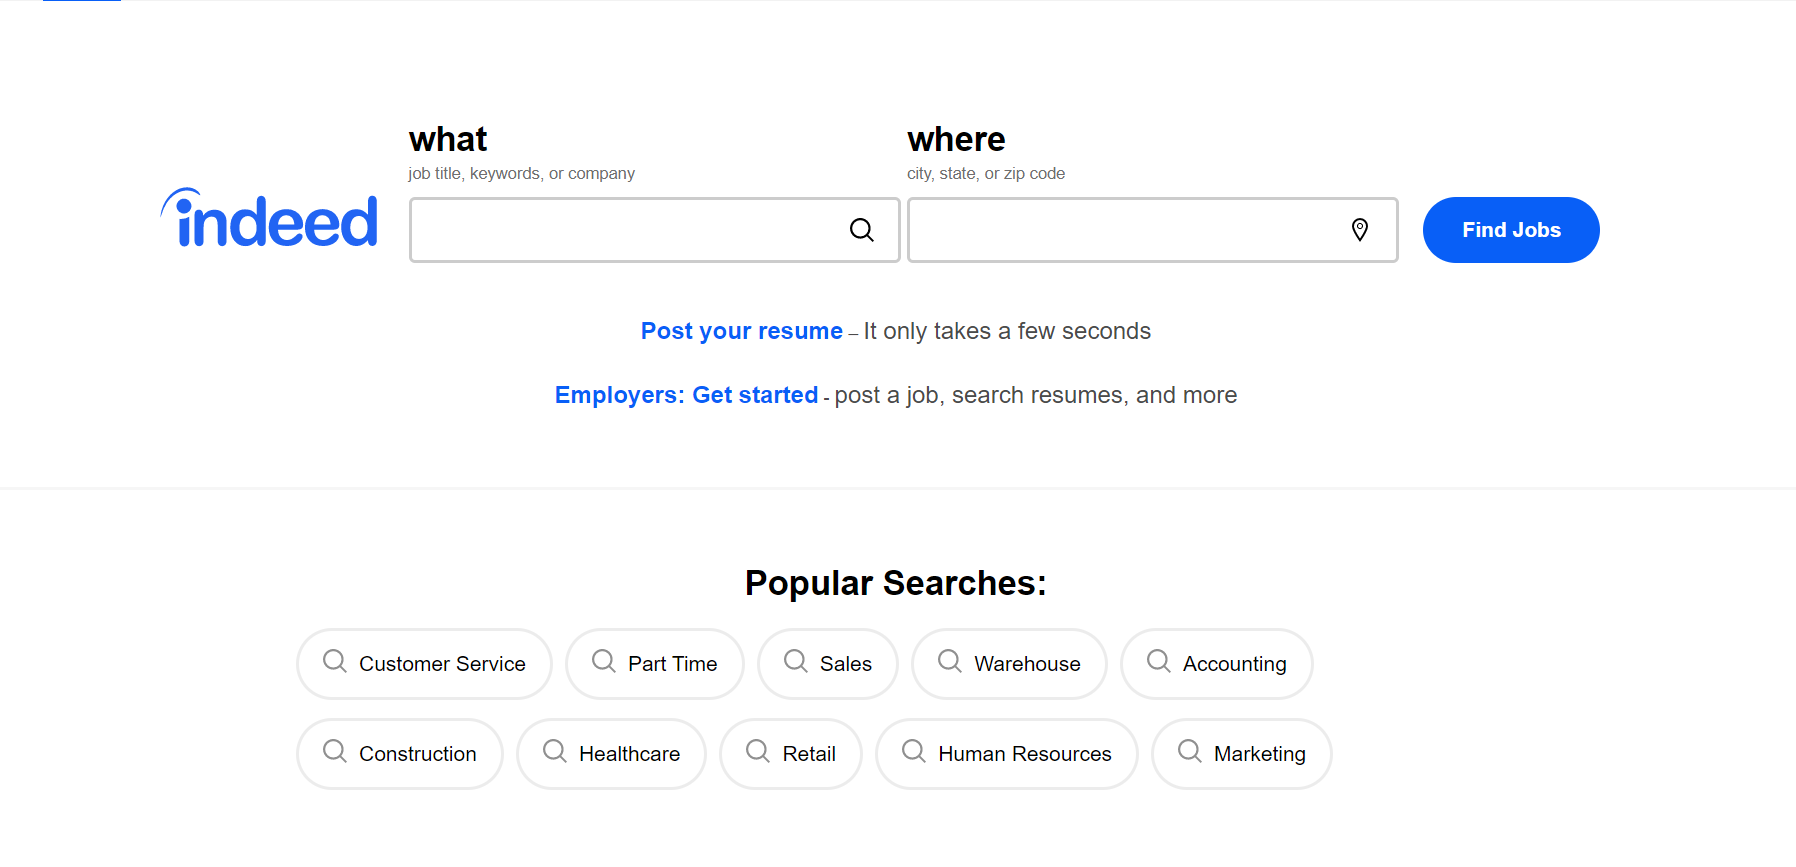 40 Best Job Search Sites In 2020 For Every Industry